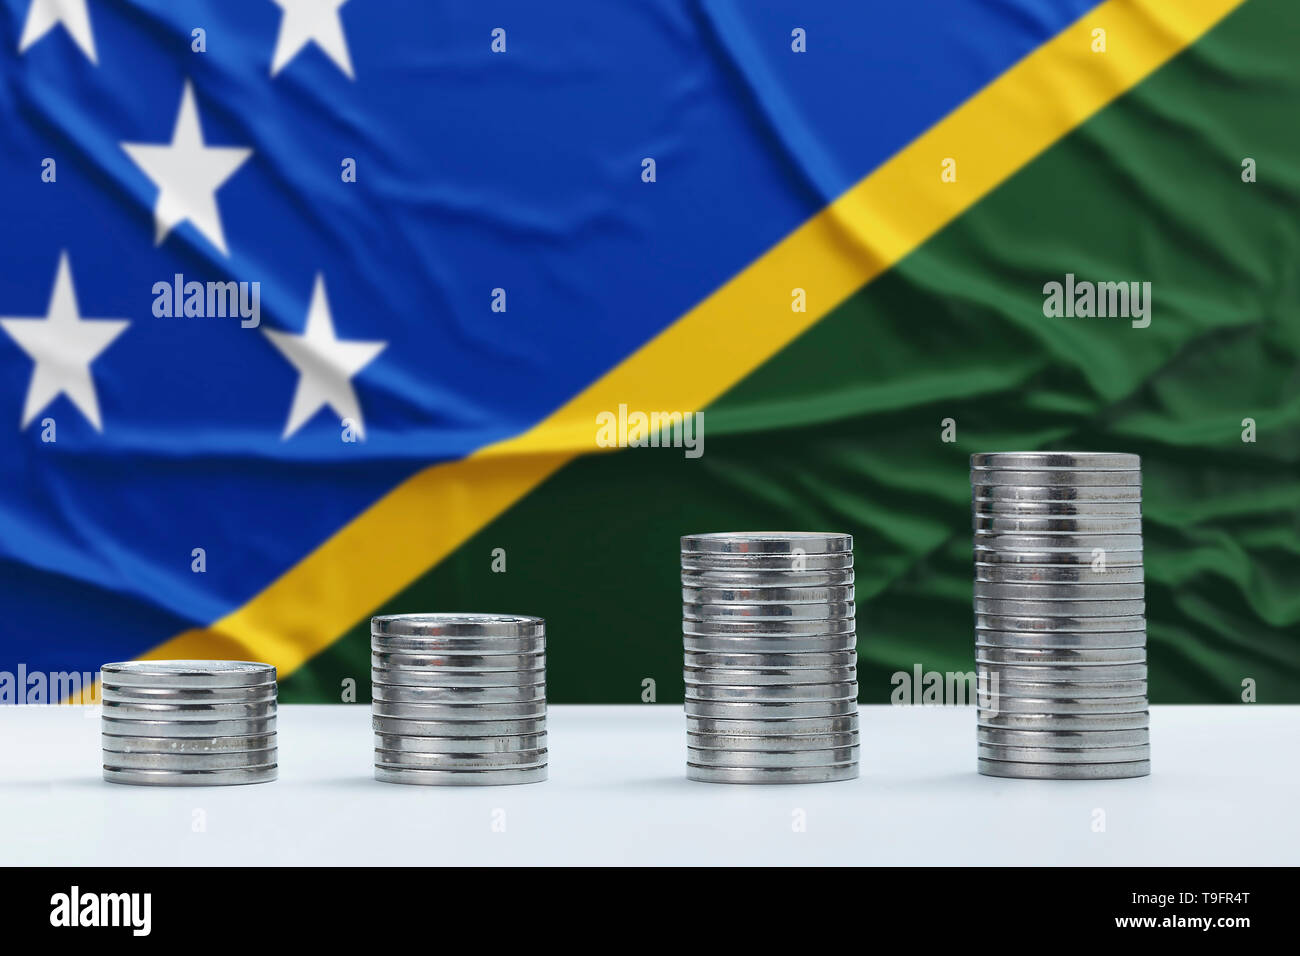 Wrinkled Solomon Islands flag in the background with rows of coins for finance and business concept. Saving money. - Stock Image